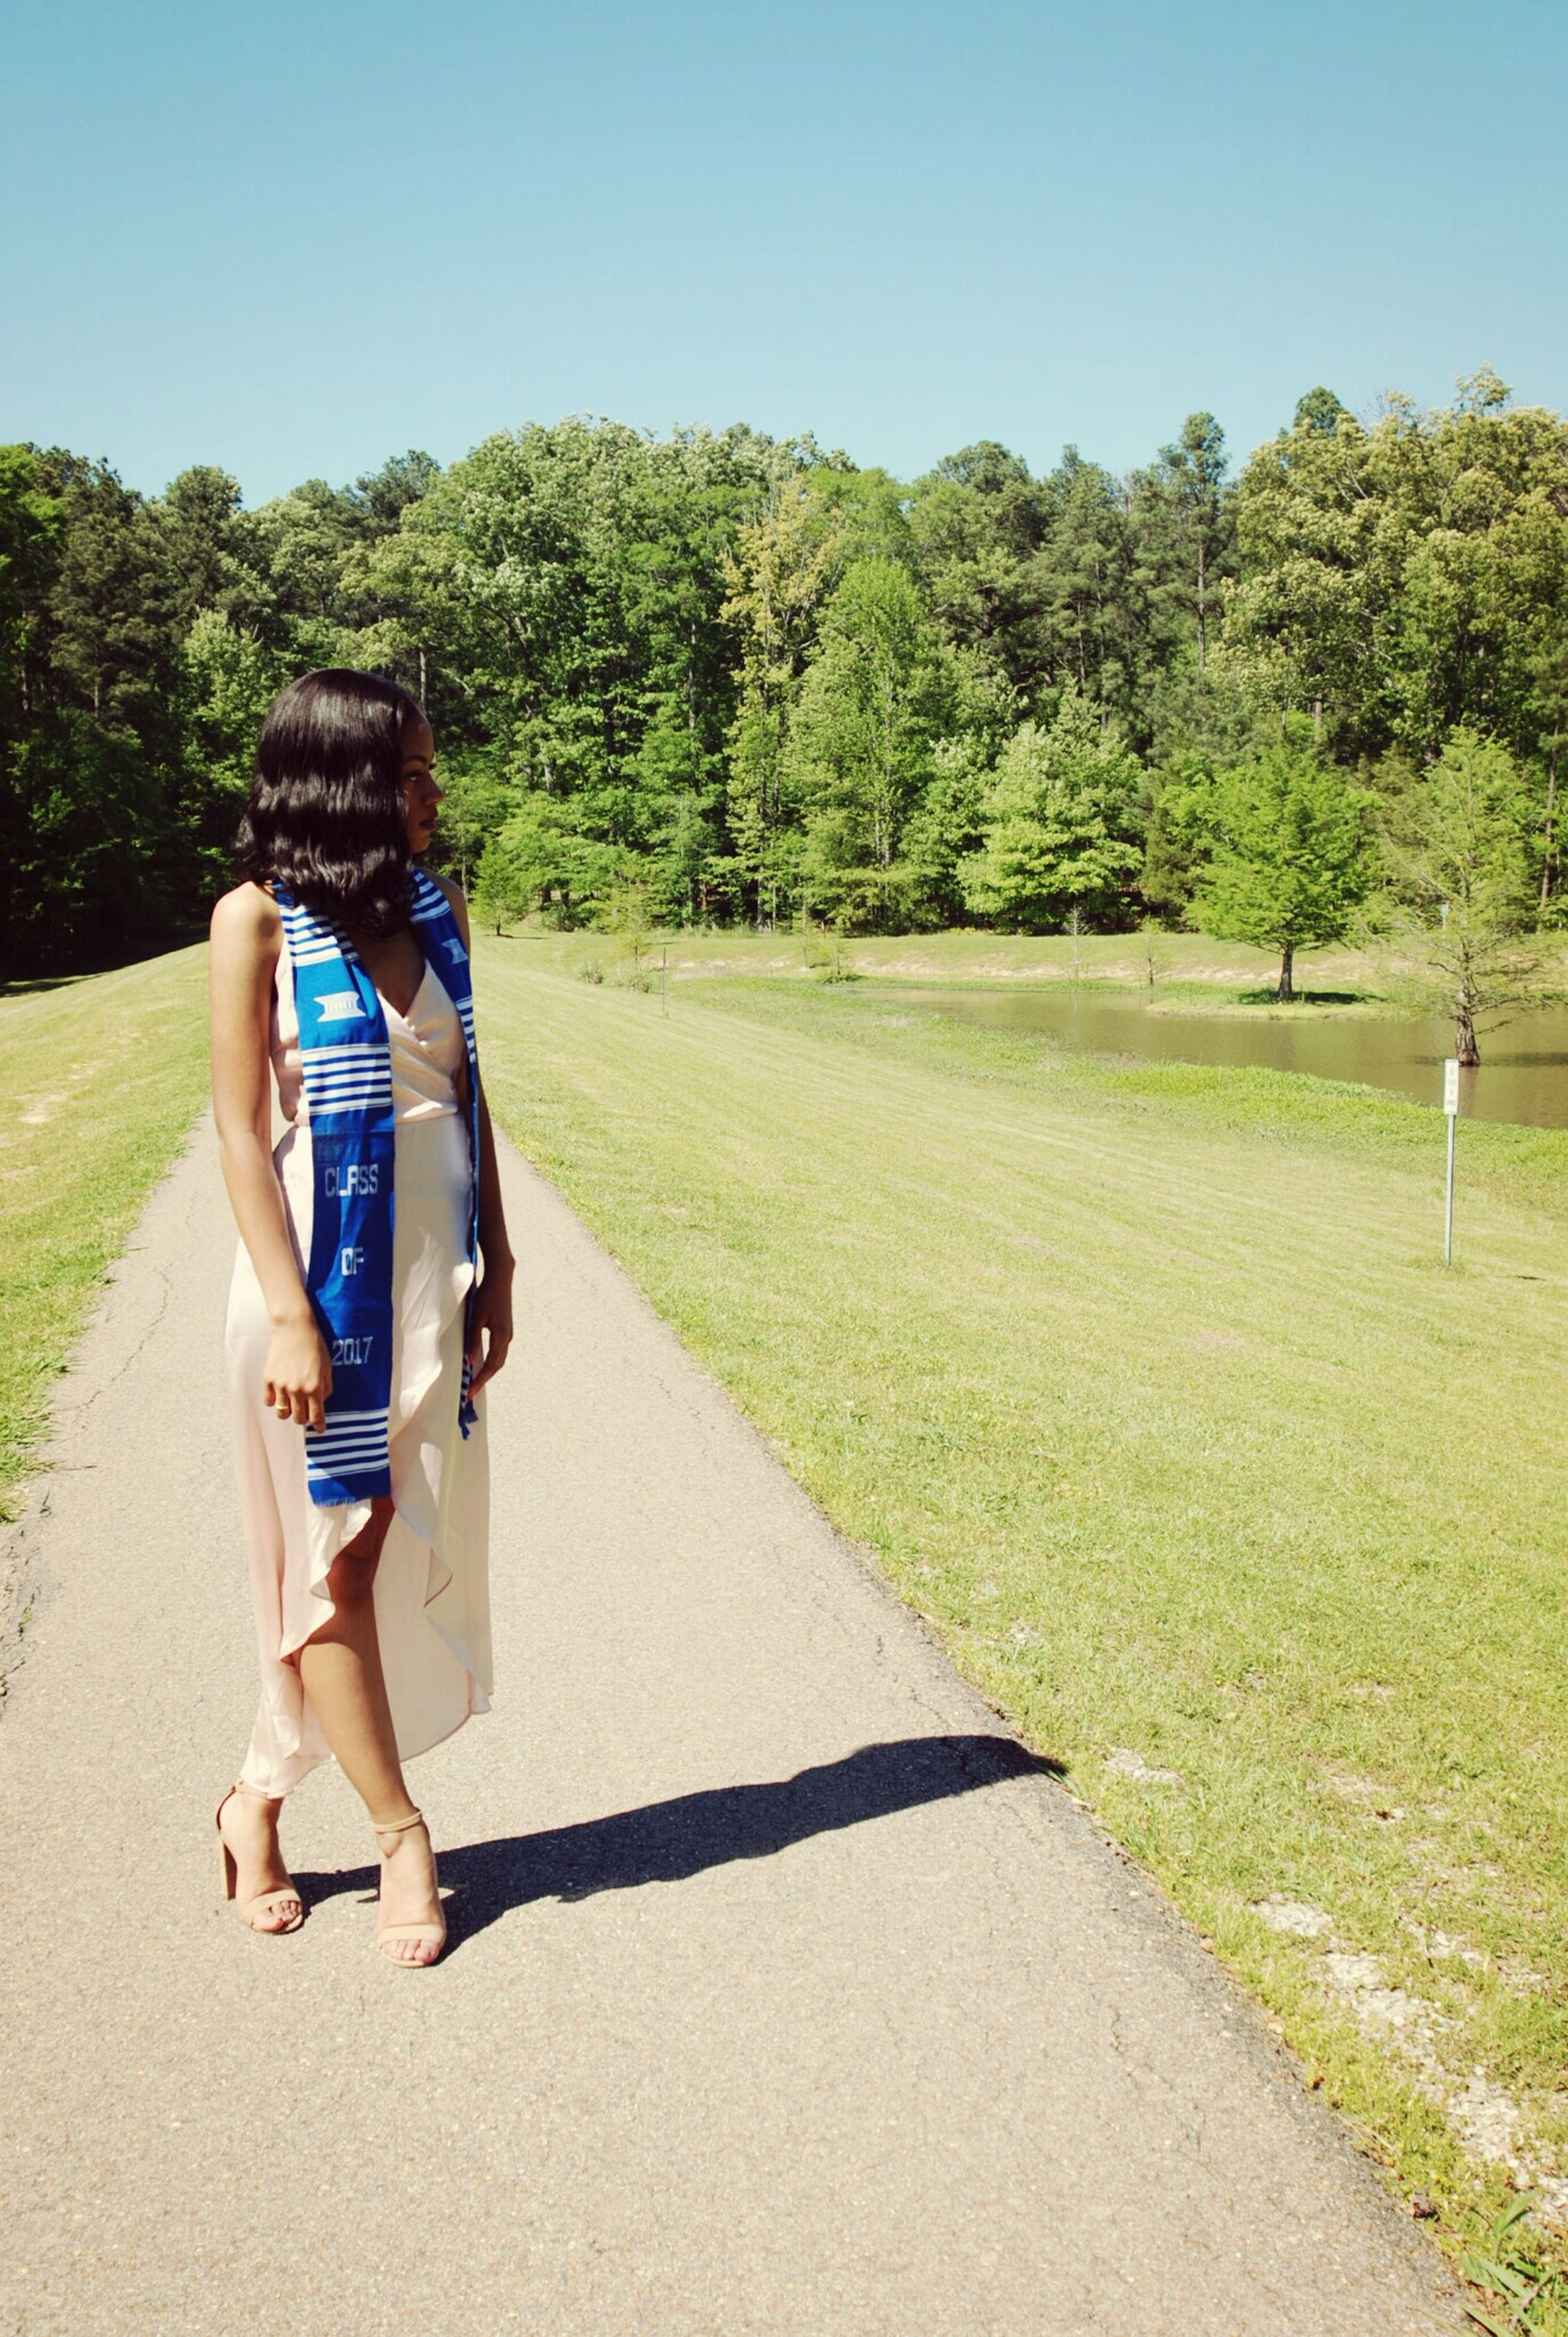 tree, rear view, full length, walking, day, casual clothing, leisure activity, clear sky, real people, outdoors, nature, sunlight, one person, grass, lifestyles, road, shadow, beauty in nature, scenics, sky, young adult, people